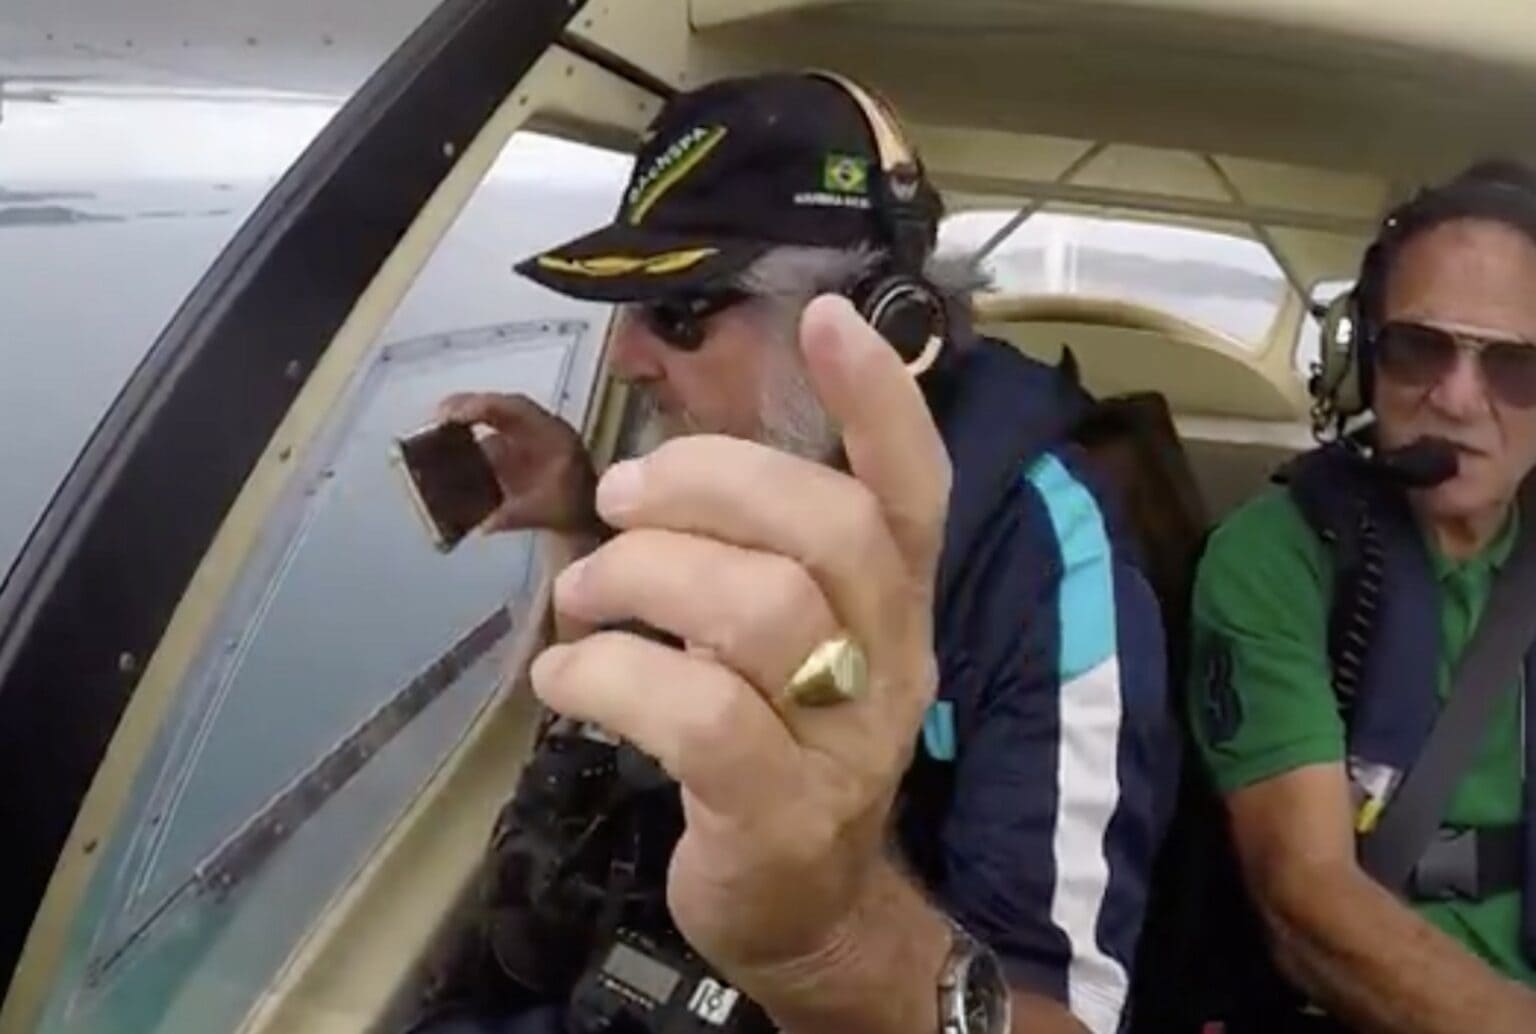 iPhone dropped out of plane